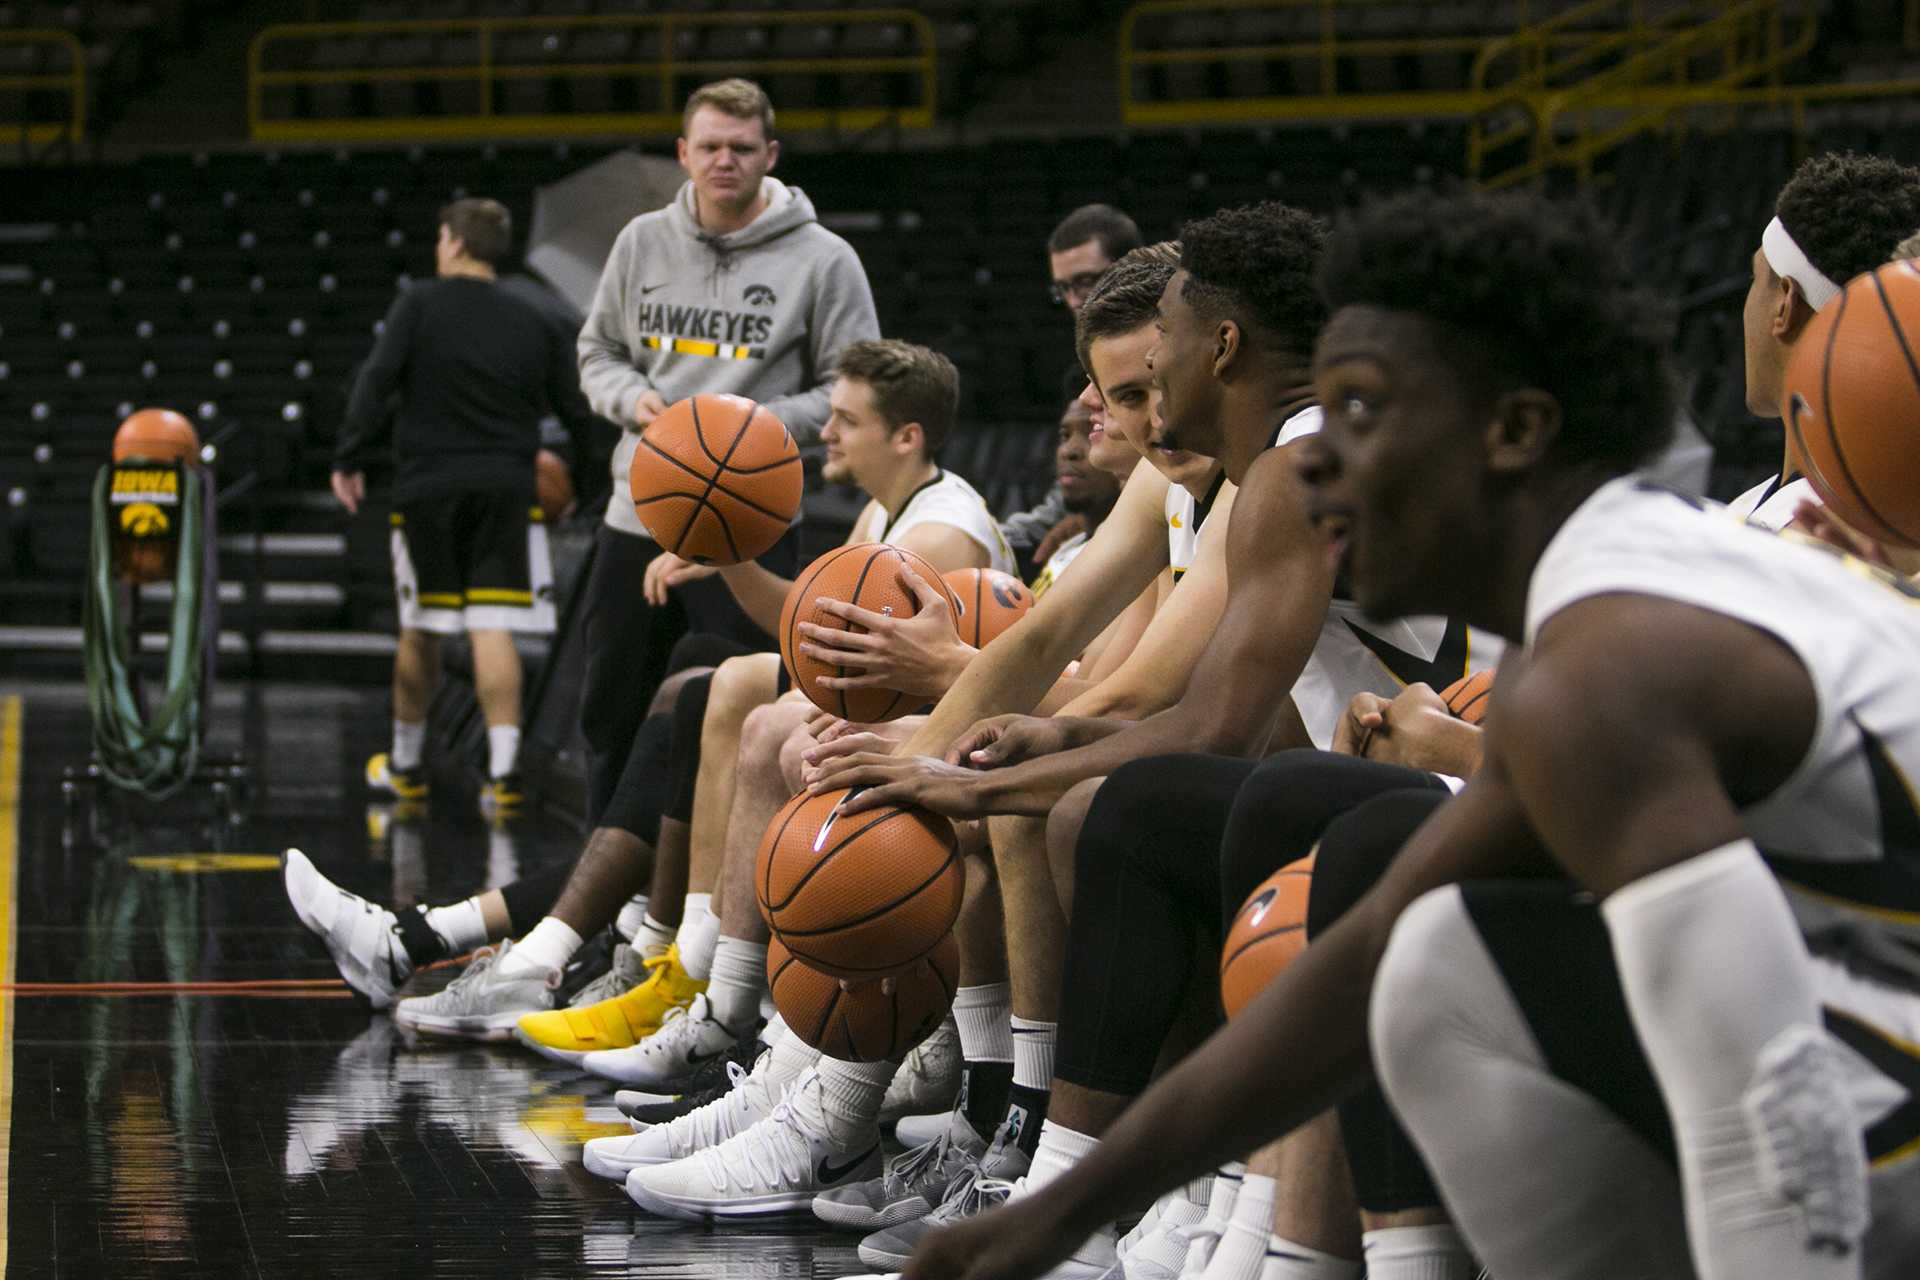 Iowa sit on the bench during men's basketball media day in Carver-Hawkeye Arena on Monday, Oct. 16, 2017. The Hawkeyes open up their season with an exhibition game against William Jewell College on Friday, Oct. 27. at 7 p.m. in Carver. (Joseph Cress/The Daily Iowan)